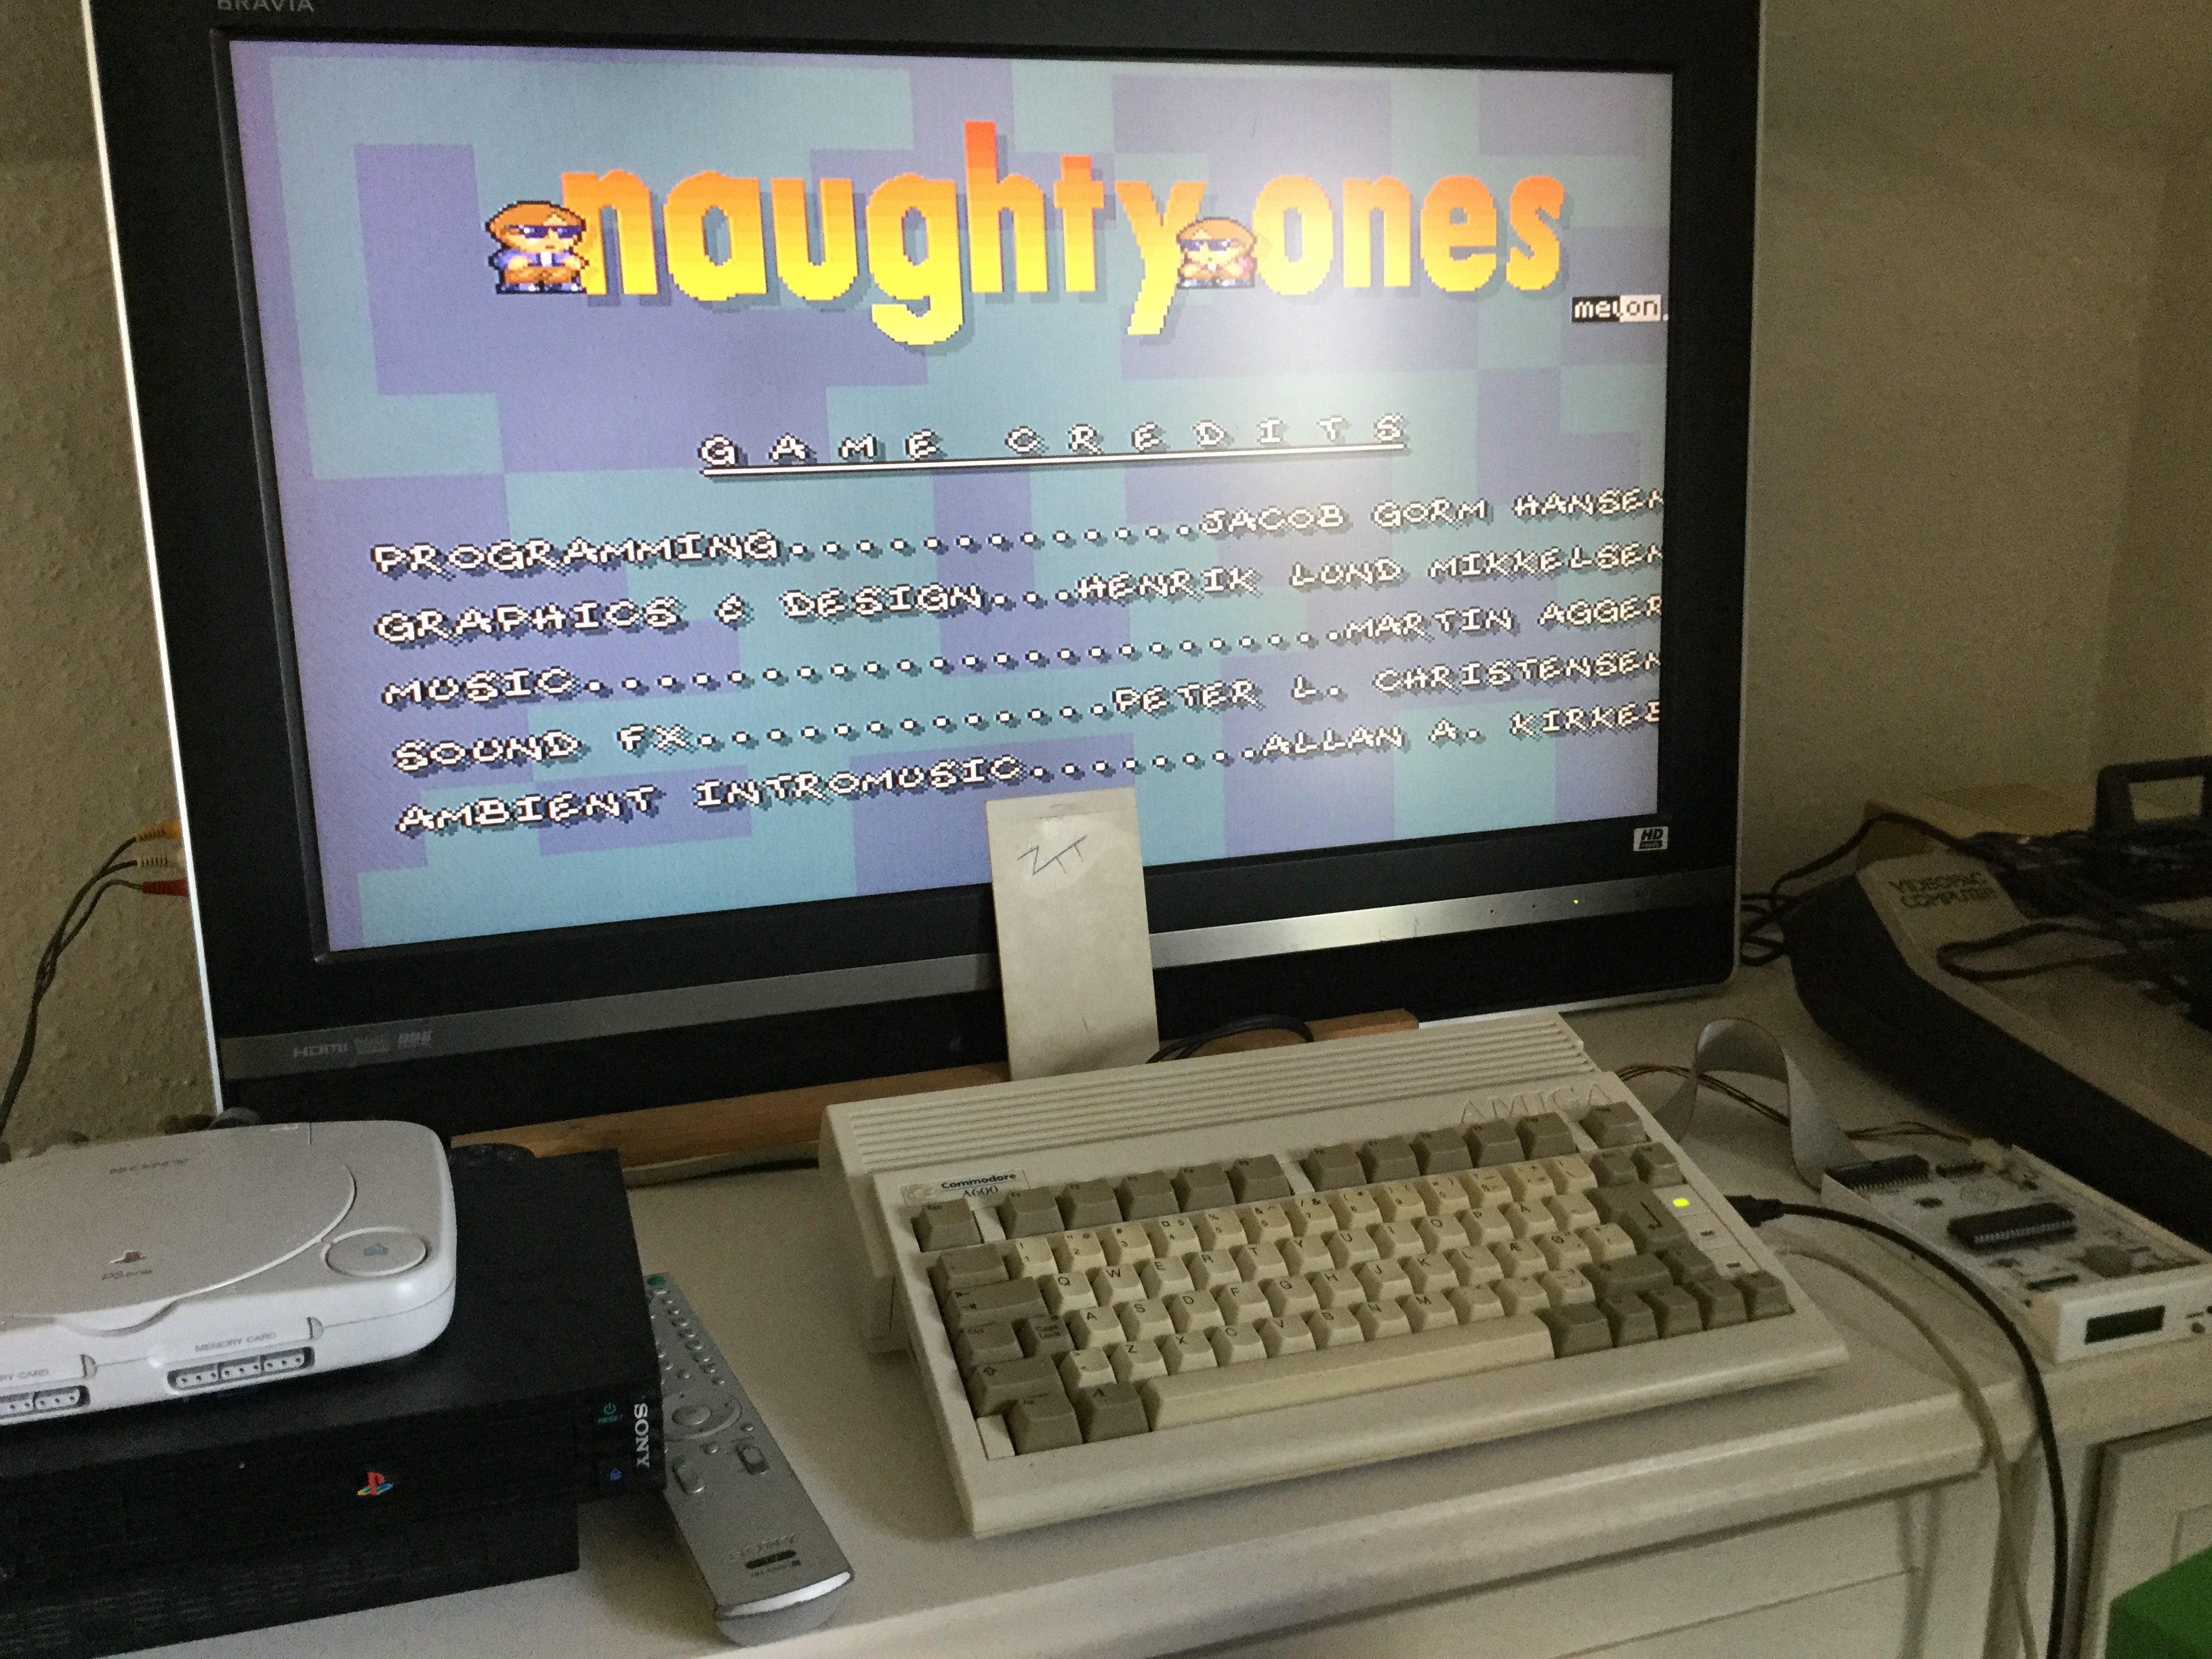 Frankie: Naughty Ones (Amiga) 127,800 points on 2020-04-25 03:00:36